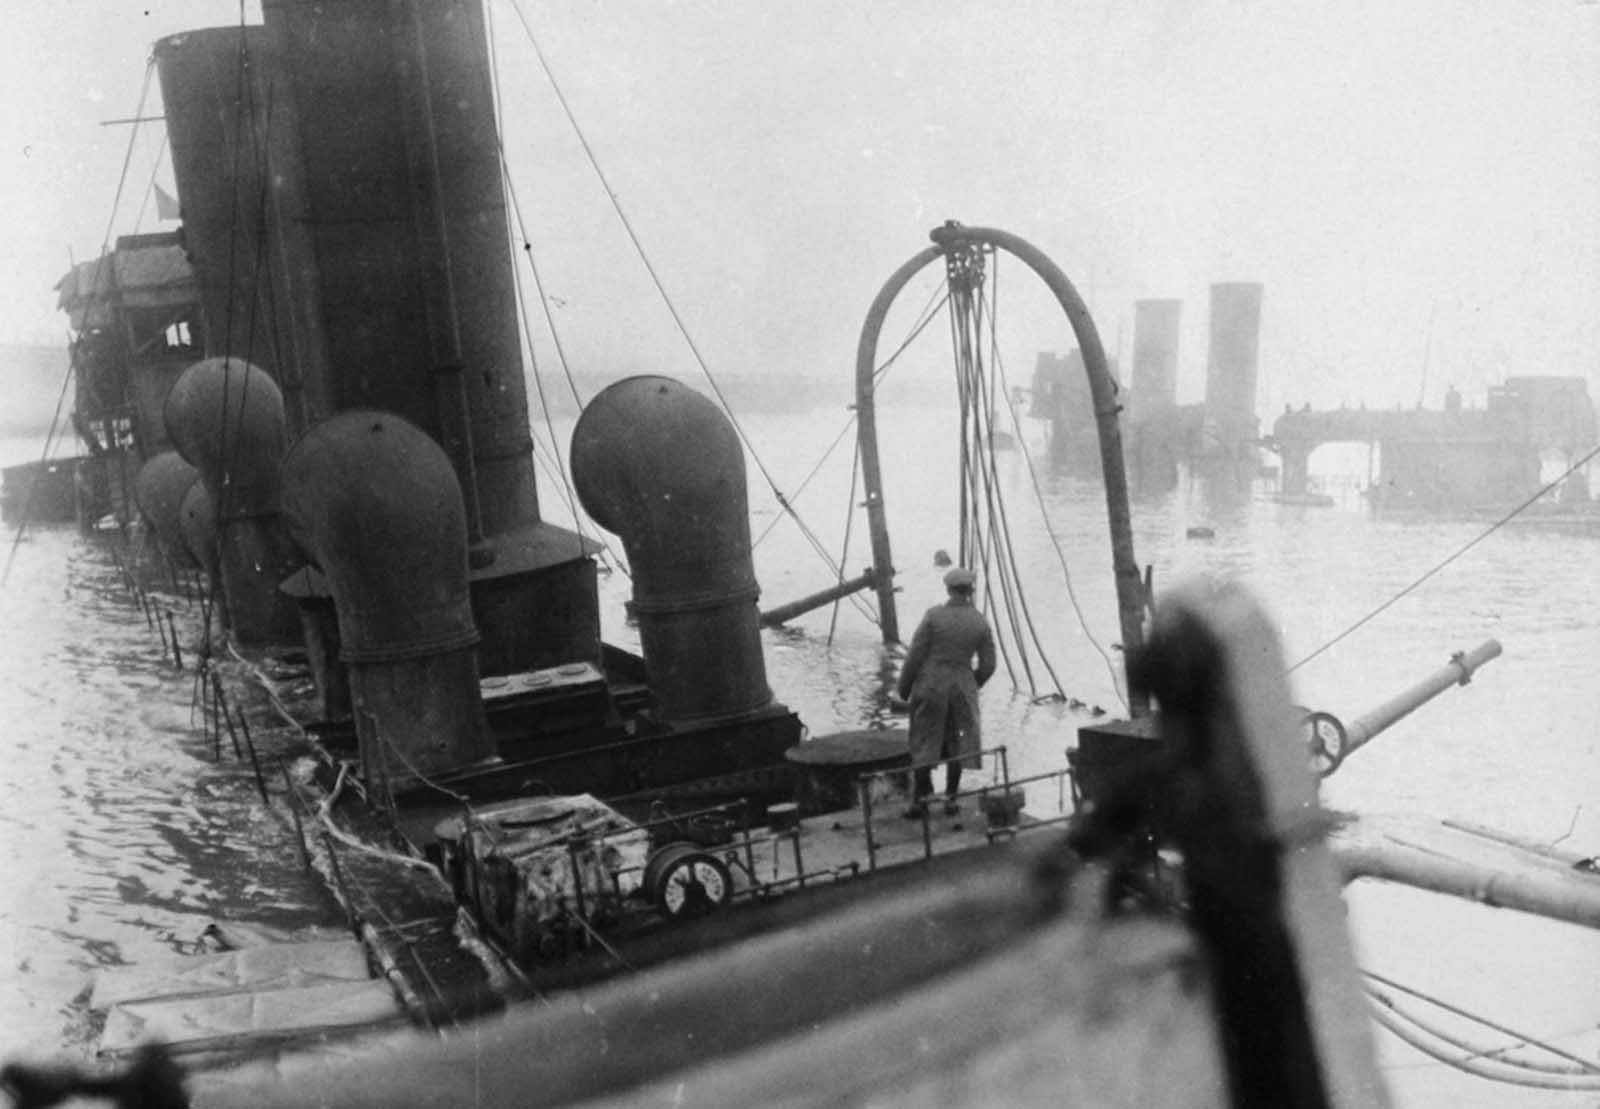 The Zeebrugge Raid took place on April 23, 1918. The Royal Navy attempted to block the Belgian port of Bruges-Zeebrugge by sinking older ships in the canal entrance, to prevent German vessels from leaving port. Two ships were successfully sunk in the canal, at the cost of 583 lives. Unfortunately, the ships were sunk in the wrong place, and the canal was re-opened in days. Photograph taken in May of 1918.